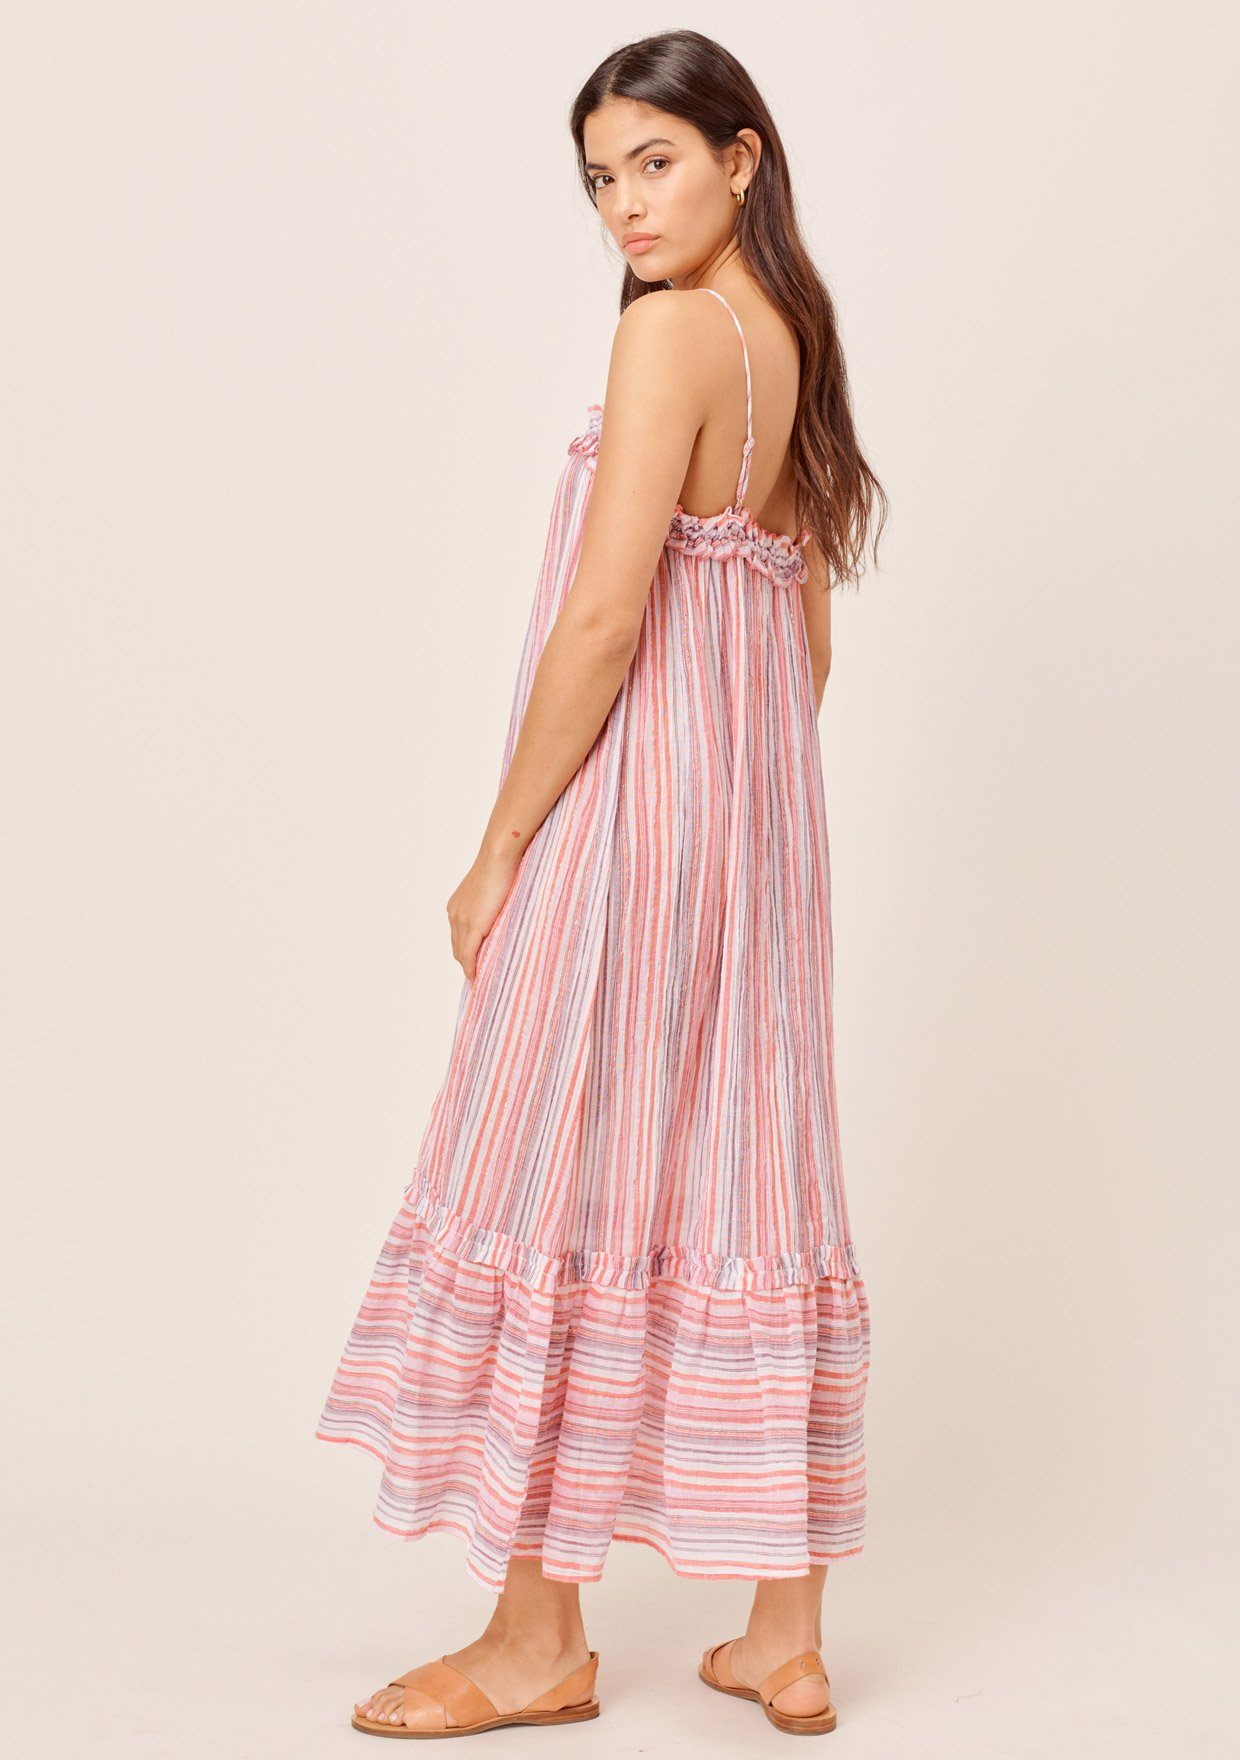 [Color: Multi Pink] Lovestitch multi pink Crinkle cotton, yarn dye striped beach dress with metallic thread, ruffled detail and tiered bottom.